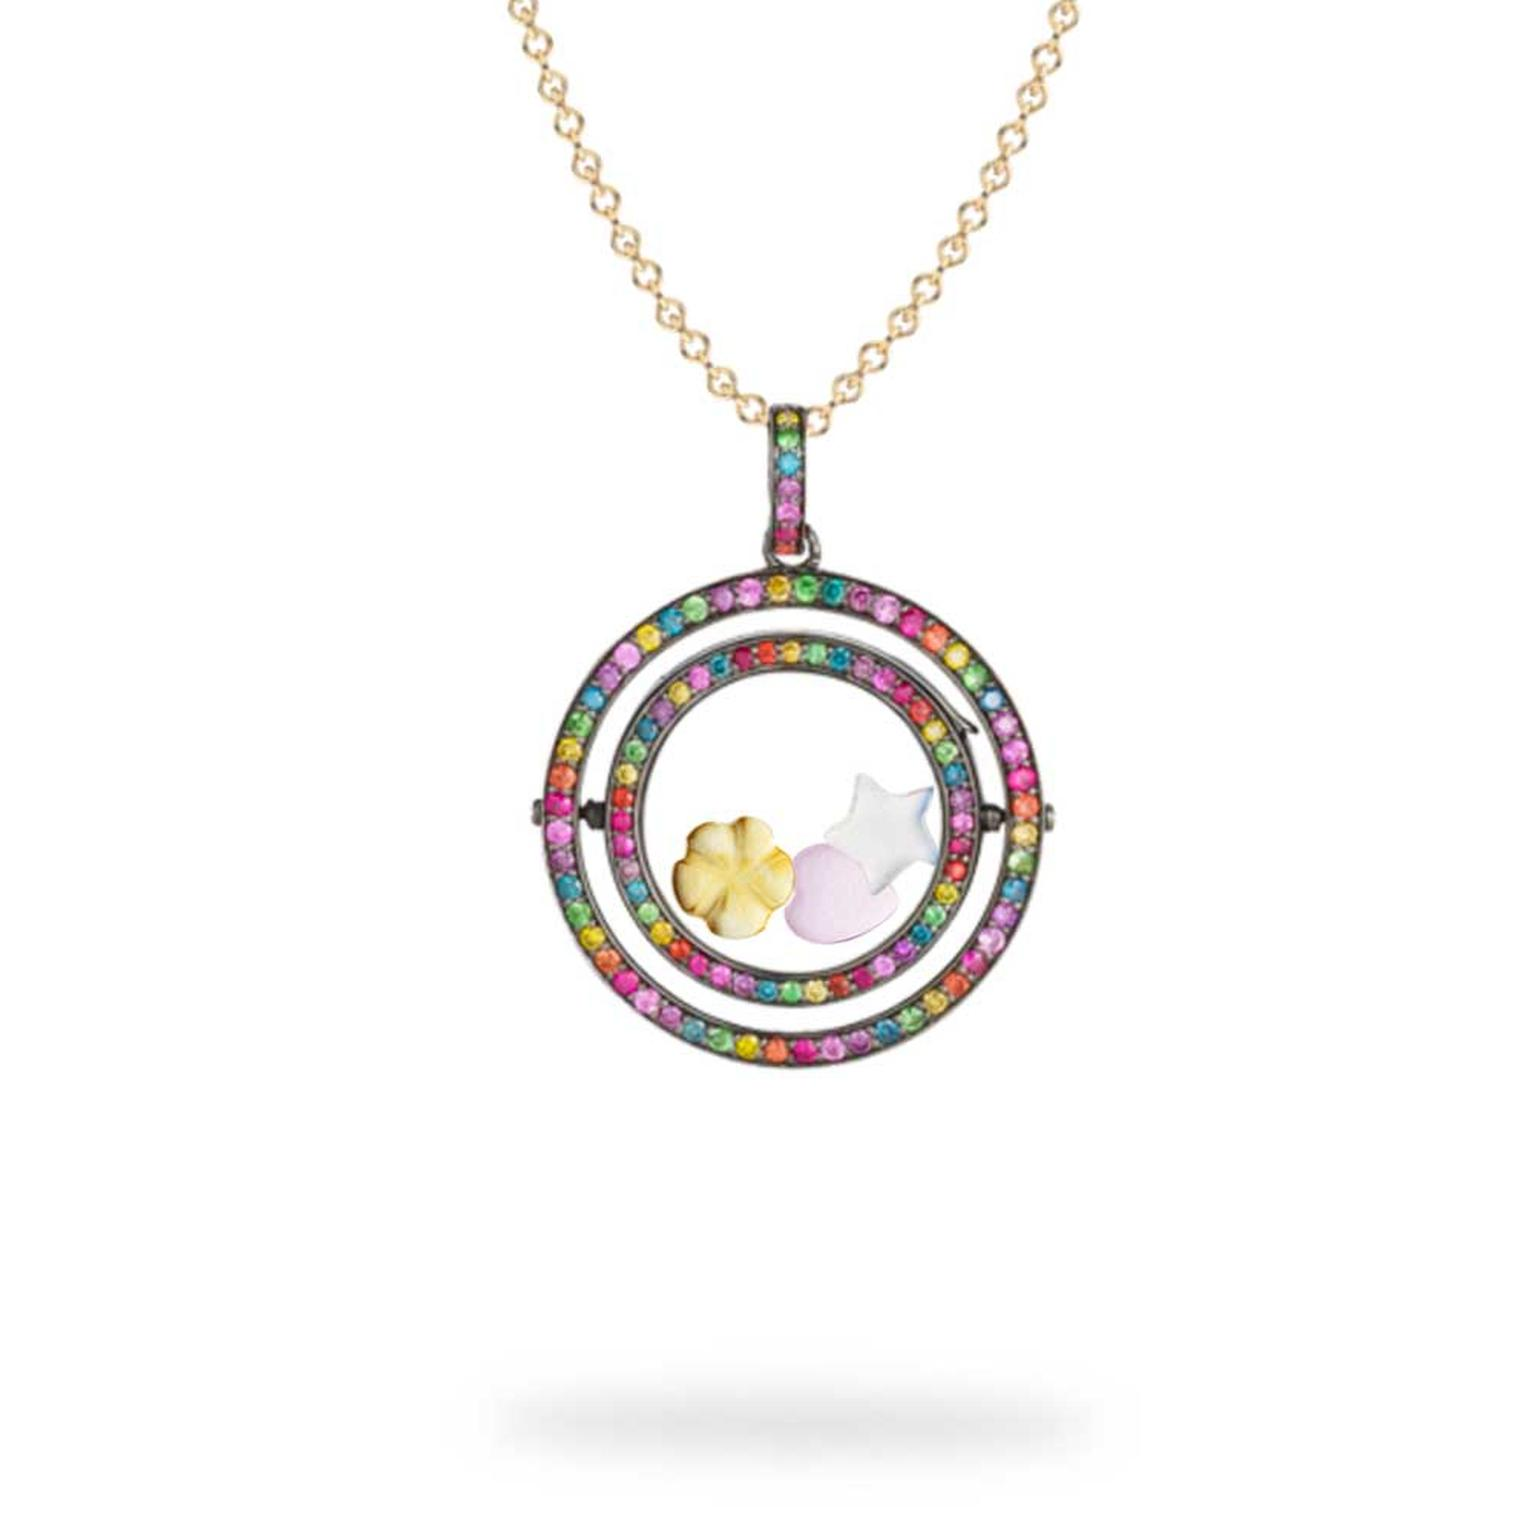 Loquet London Rainbow Revolving Locket